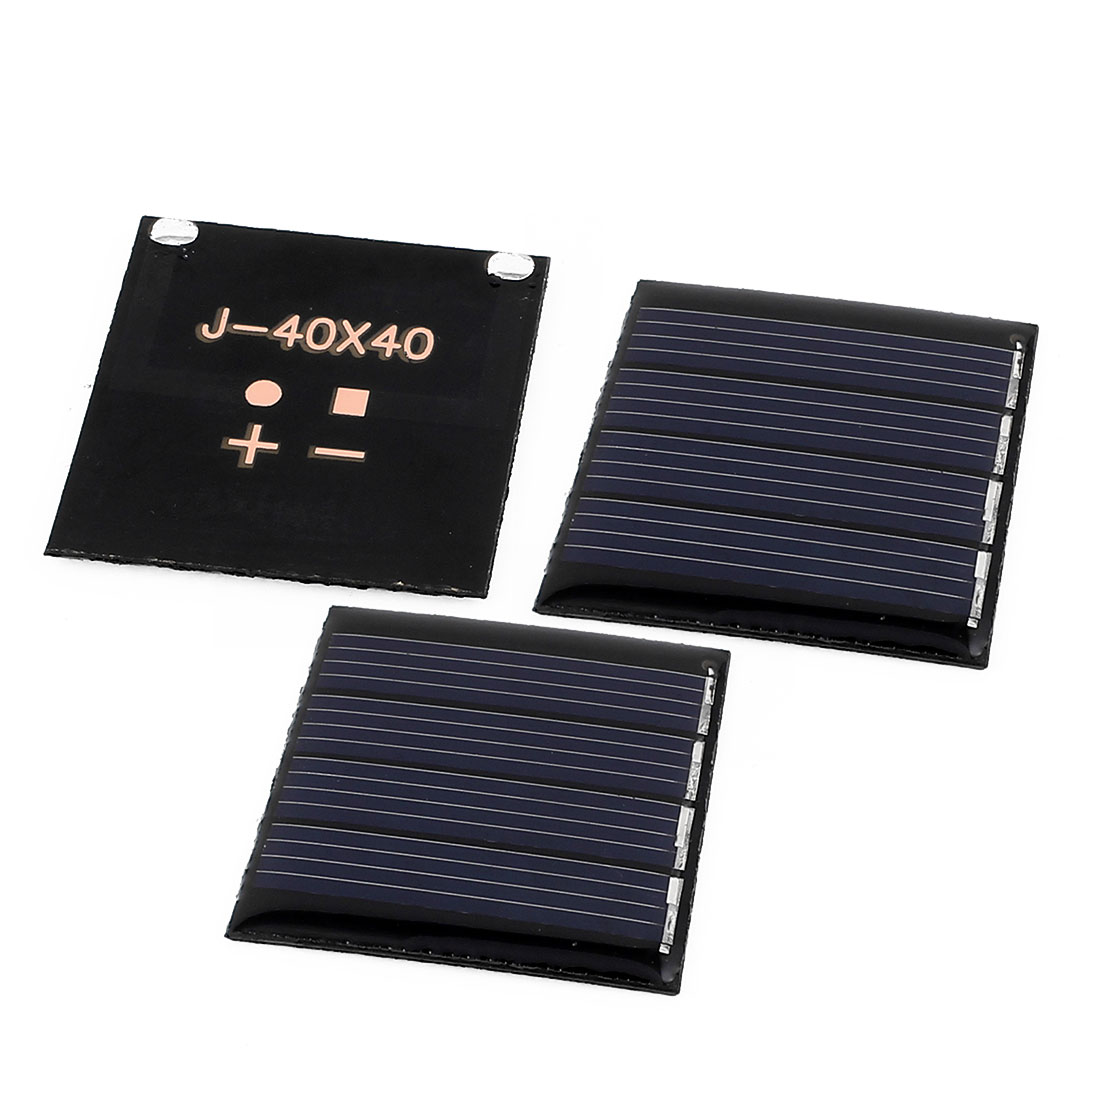 3 Pcs 2V 0.14W DIY Polycrystallinesilicon Solar Panel Power Cell Battery Charger 40mm x 40mm